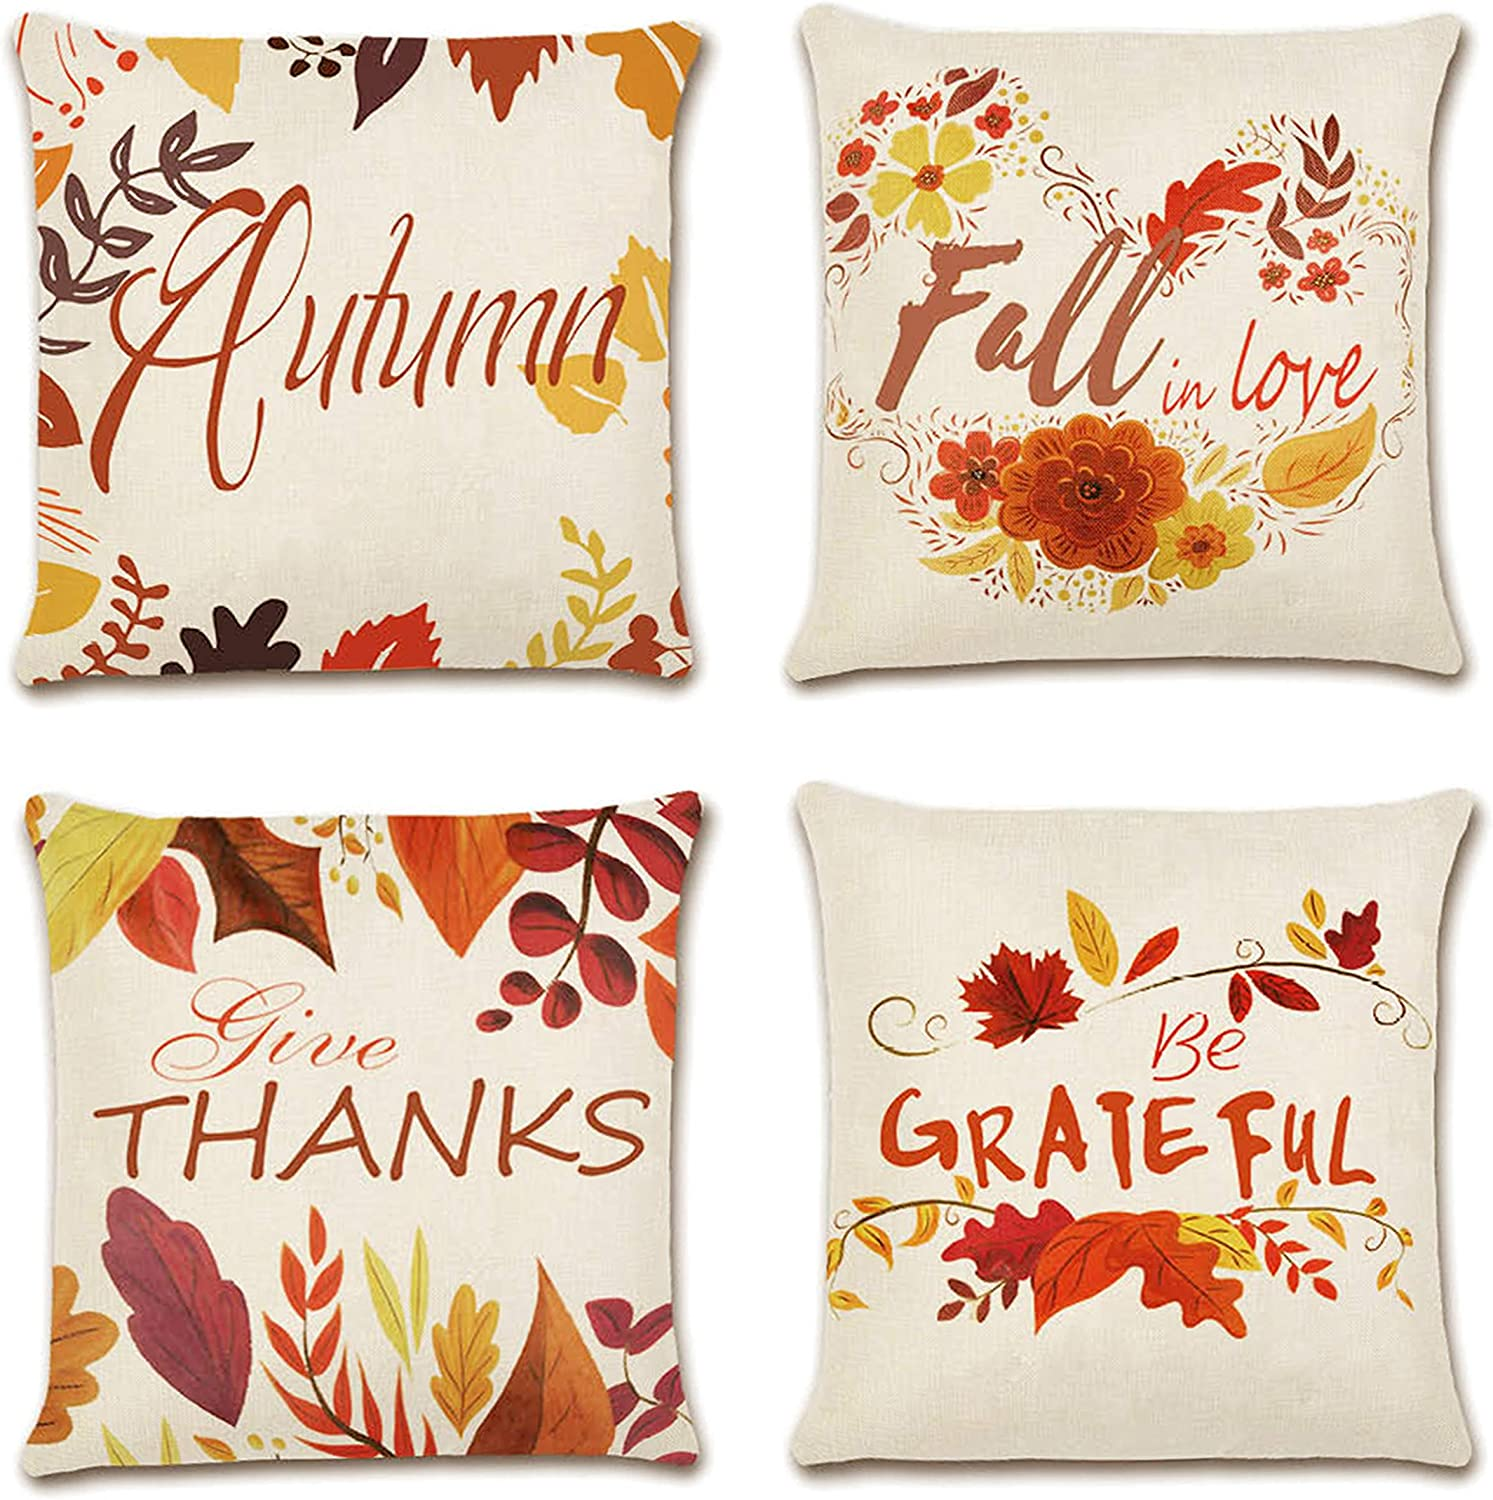 Fall Pillow Covers 18x18 Set of 4 - Autumn Fall Leaves Harvest Design, Thanksgiving Pillow covers, Colorful Decorative Special Fall Quotes Saying, Country Style Home Outdoor Decor Cushion Covers